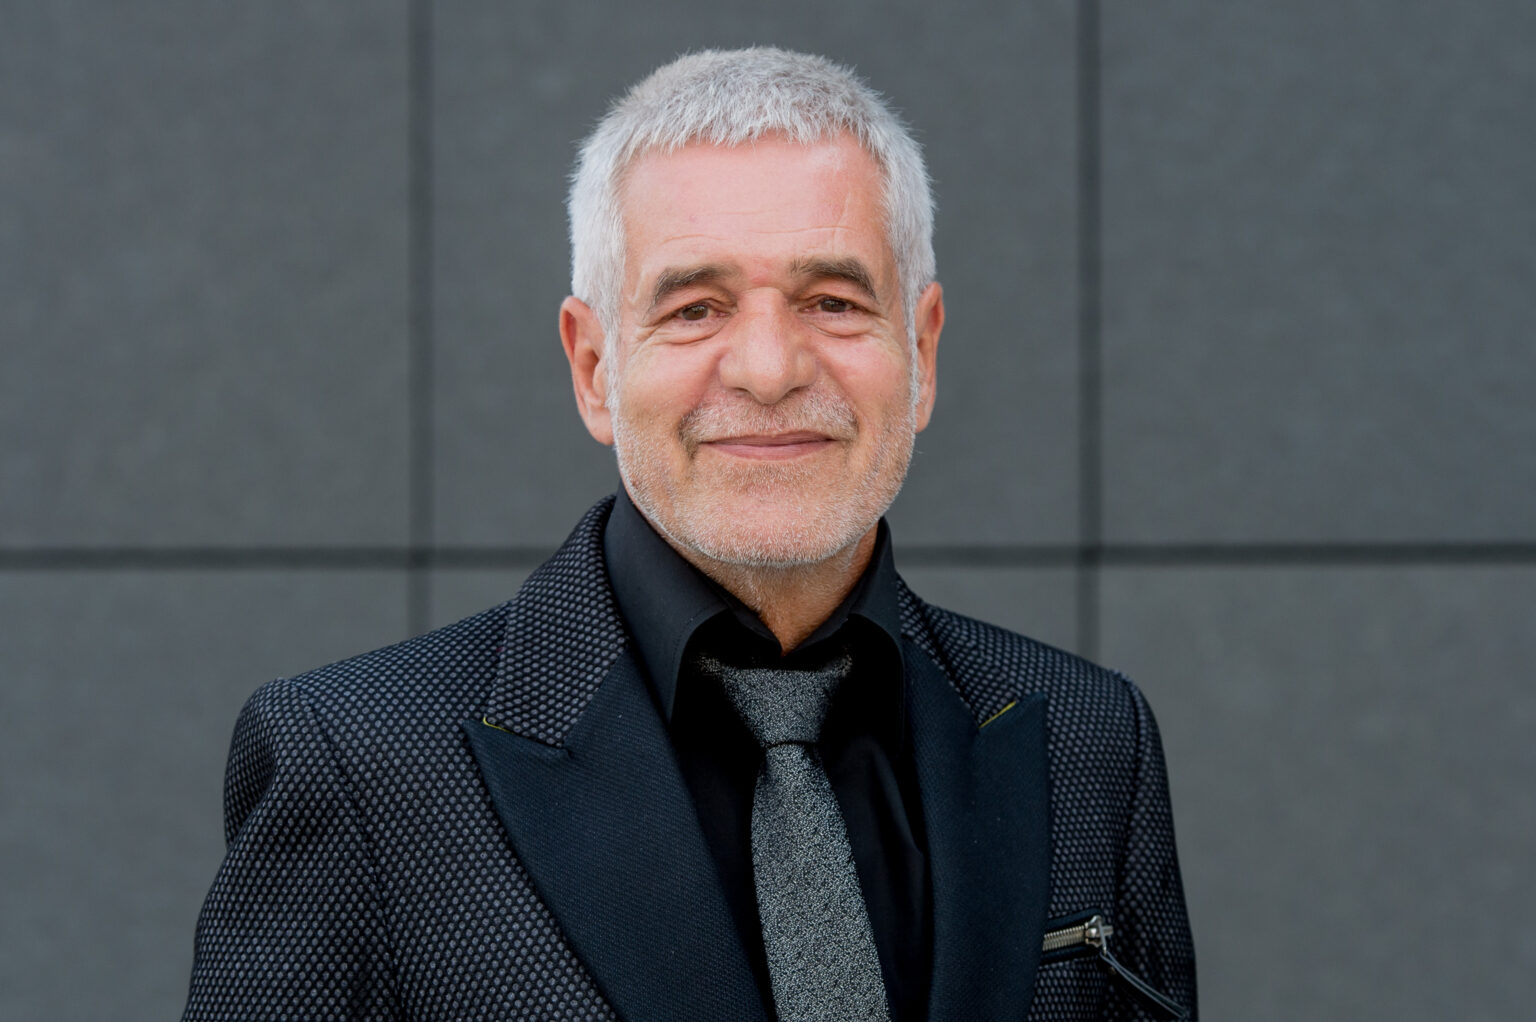 Prof. Ralf Niebergall re-elected as Vice President of the Federal Chamber of Architects